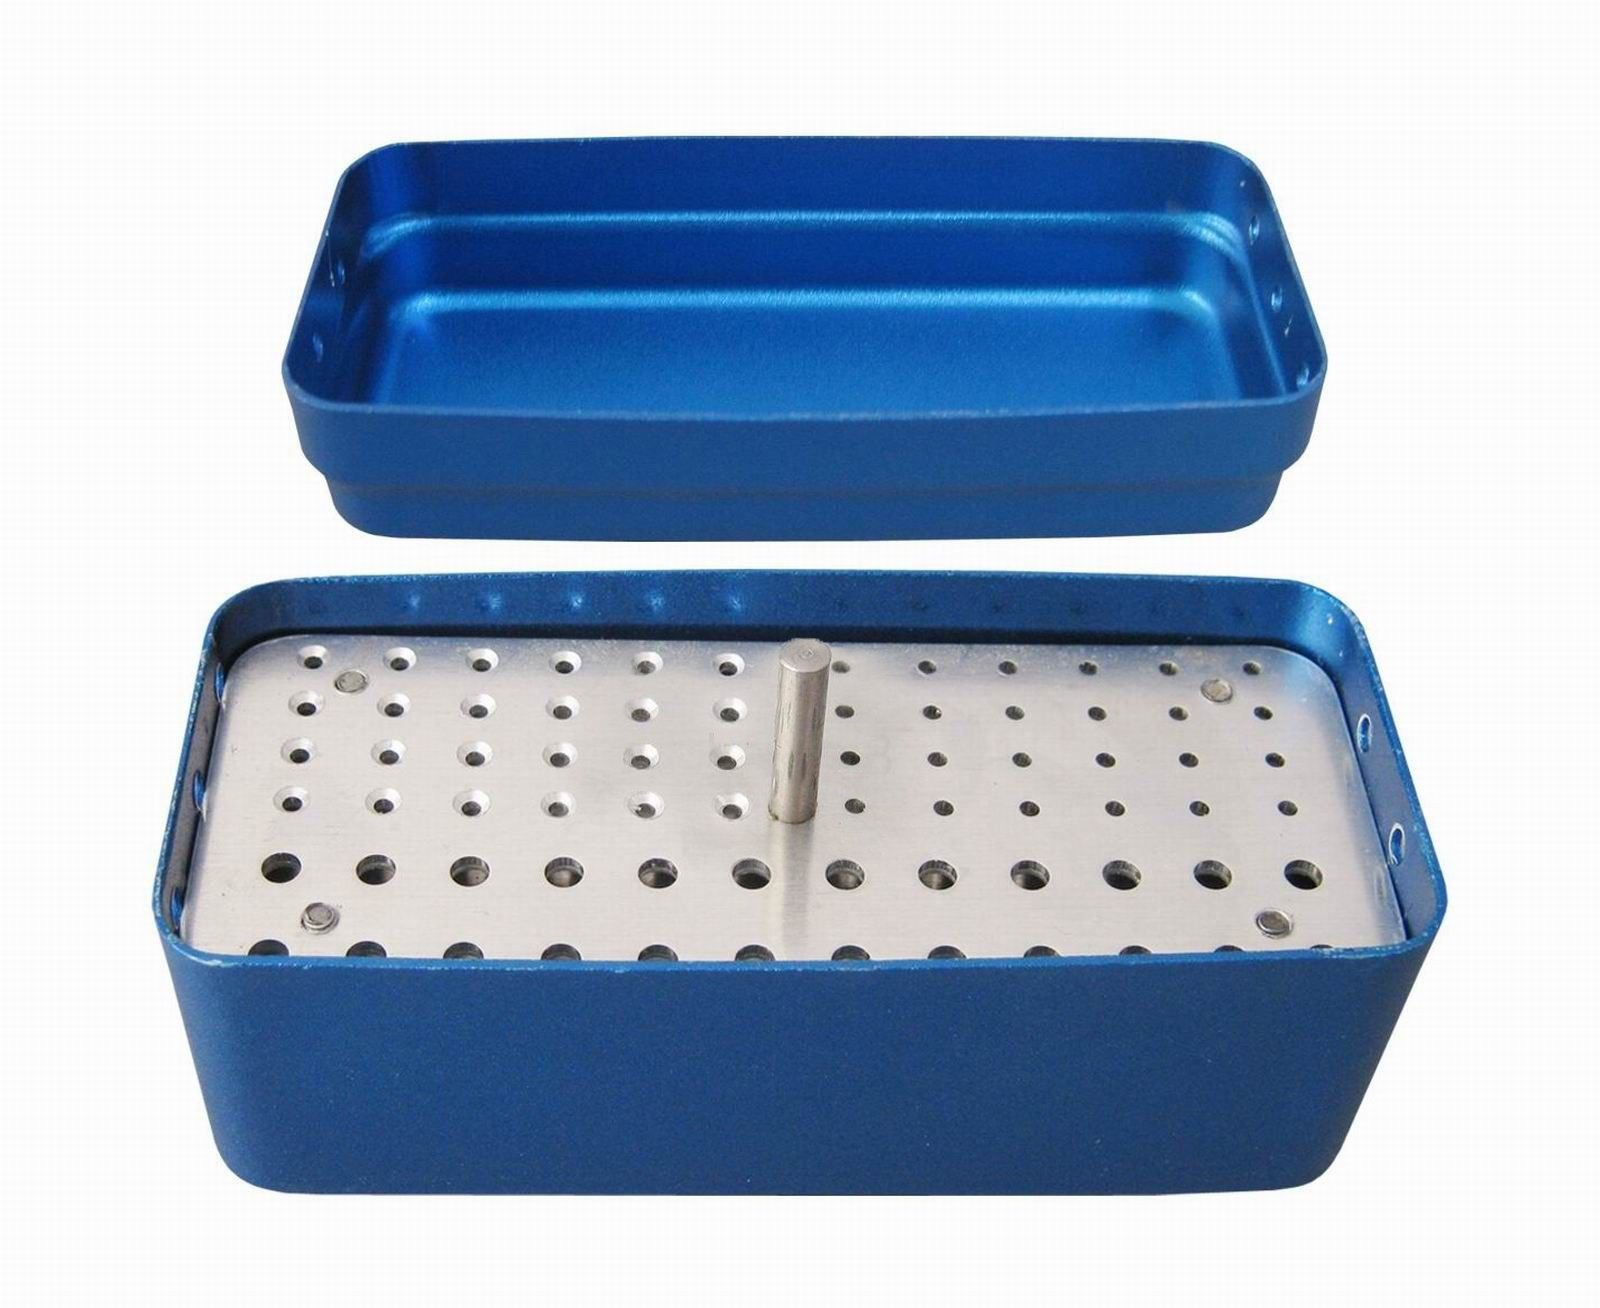 Aphrodite 72 Holes Bur Holder Sterilizer Case Disinfection Box 3 Used Blue Dual core